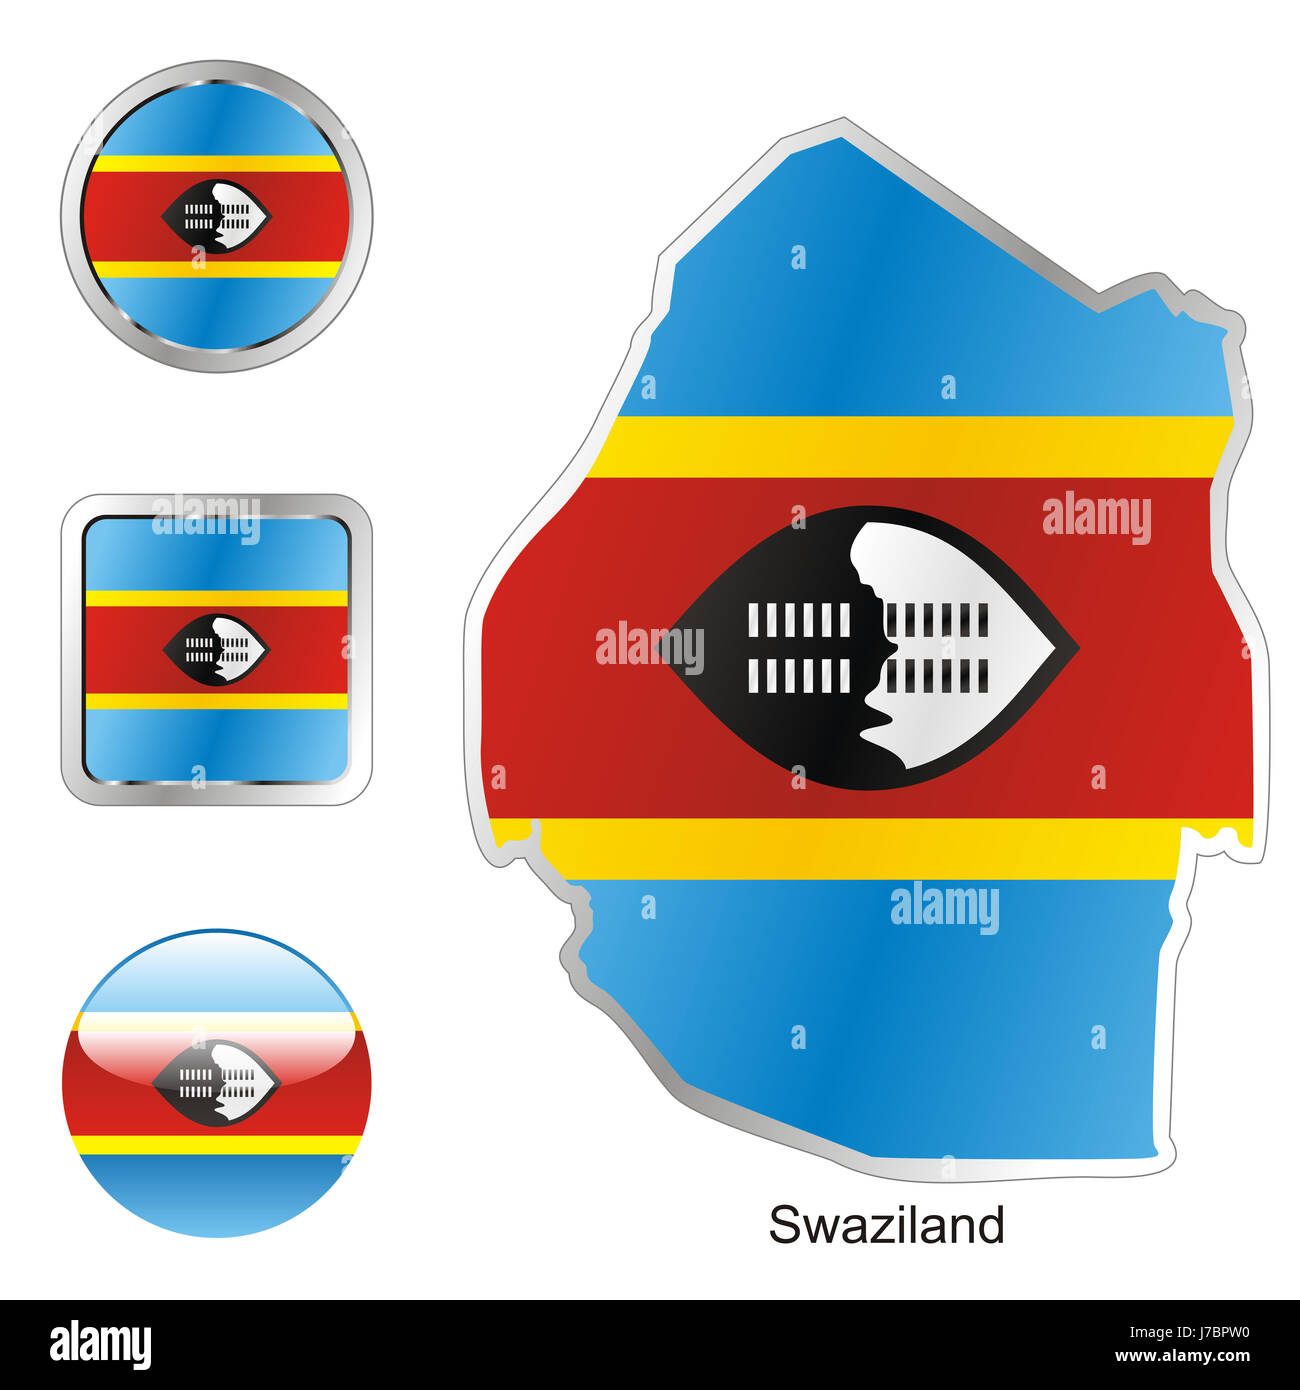 africa illustration flag button swaziland travel colour emblem africa Stock Photo